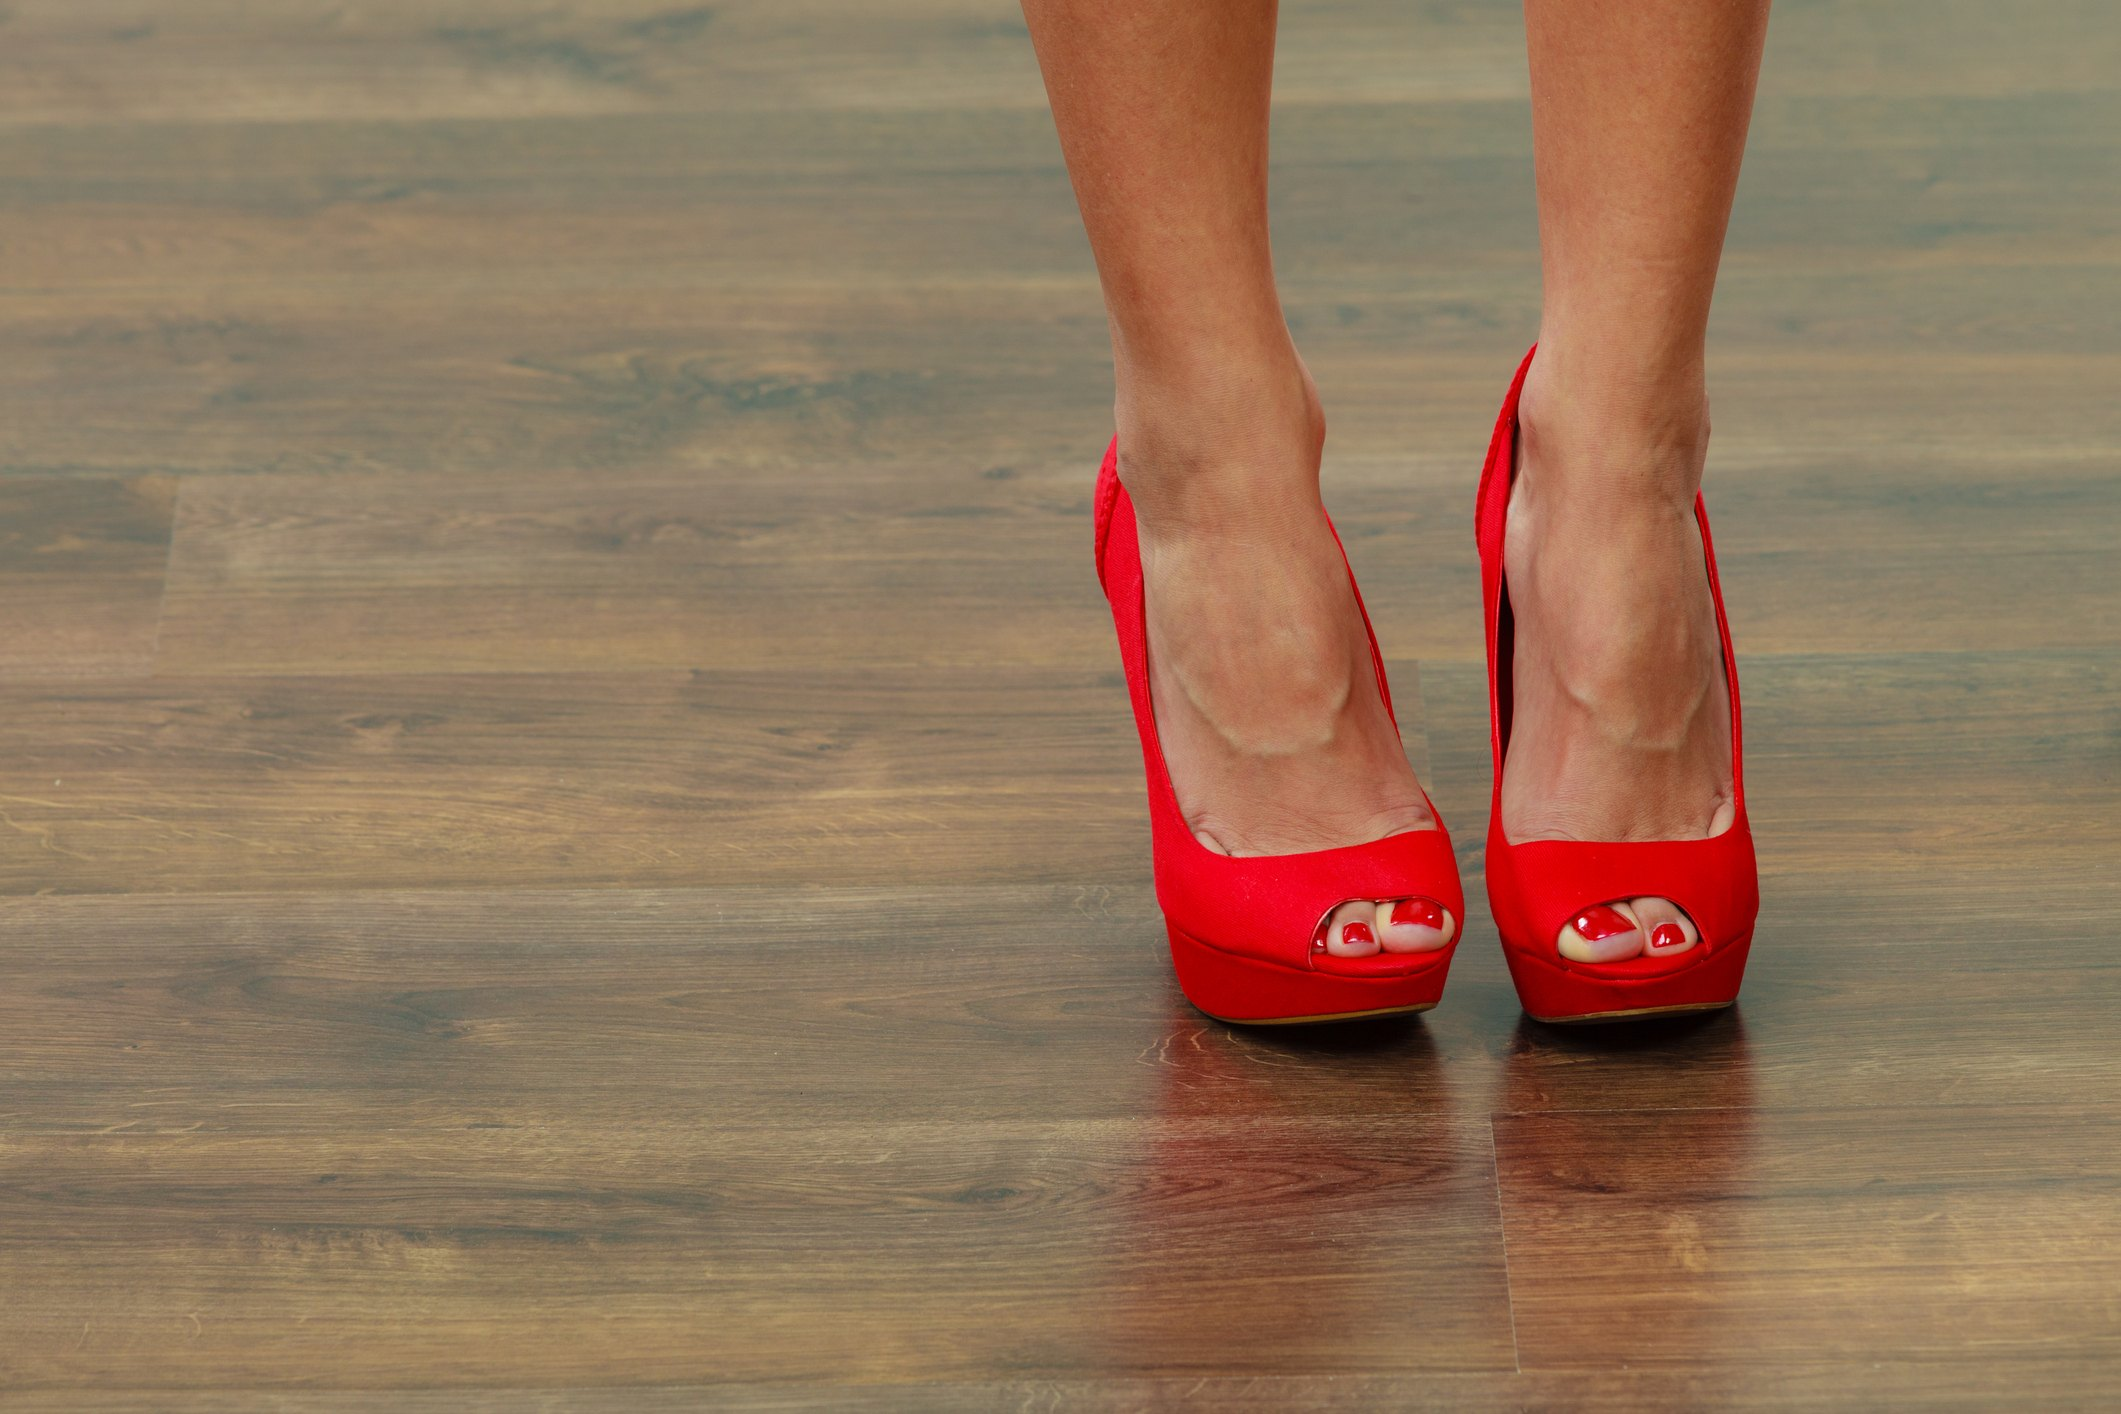 Red high heels on a wood floor